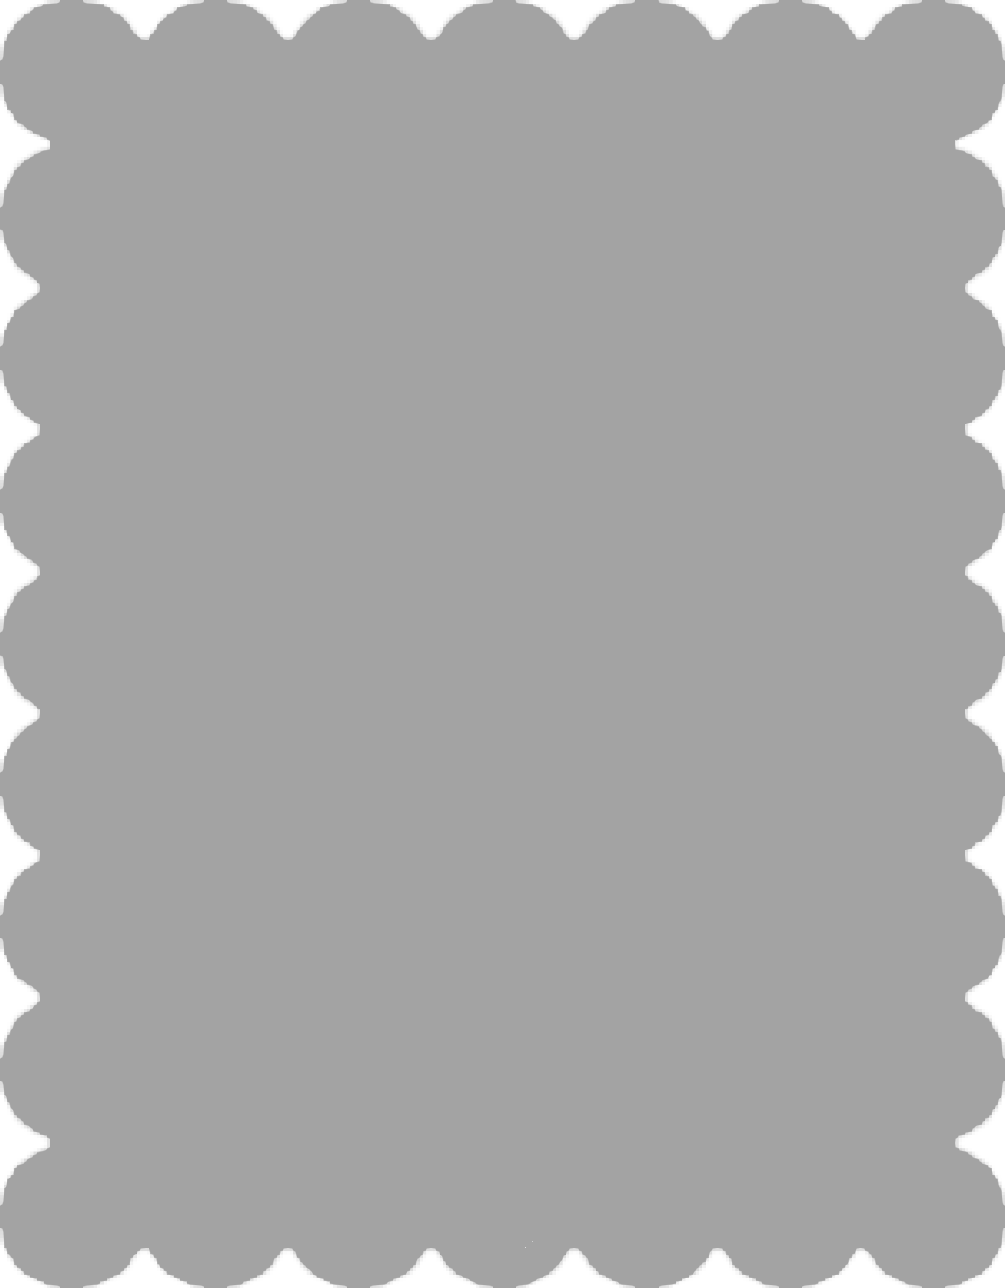 scalloped edge png 2 png image